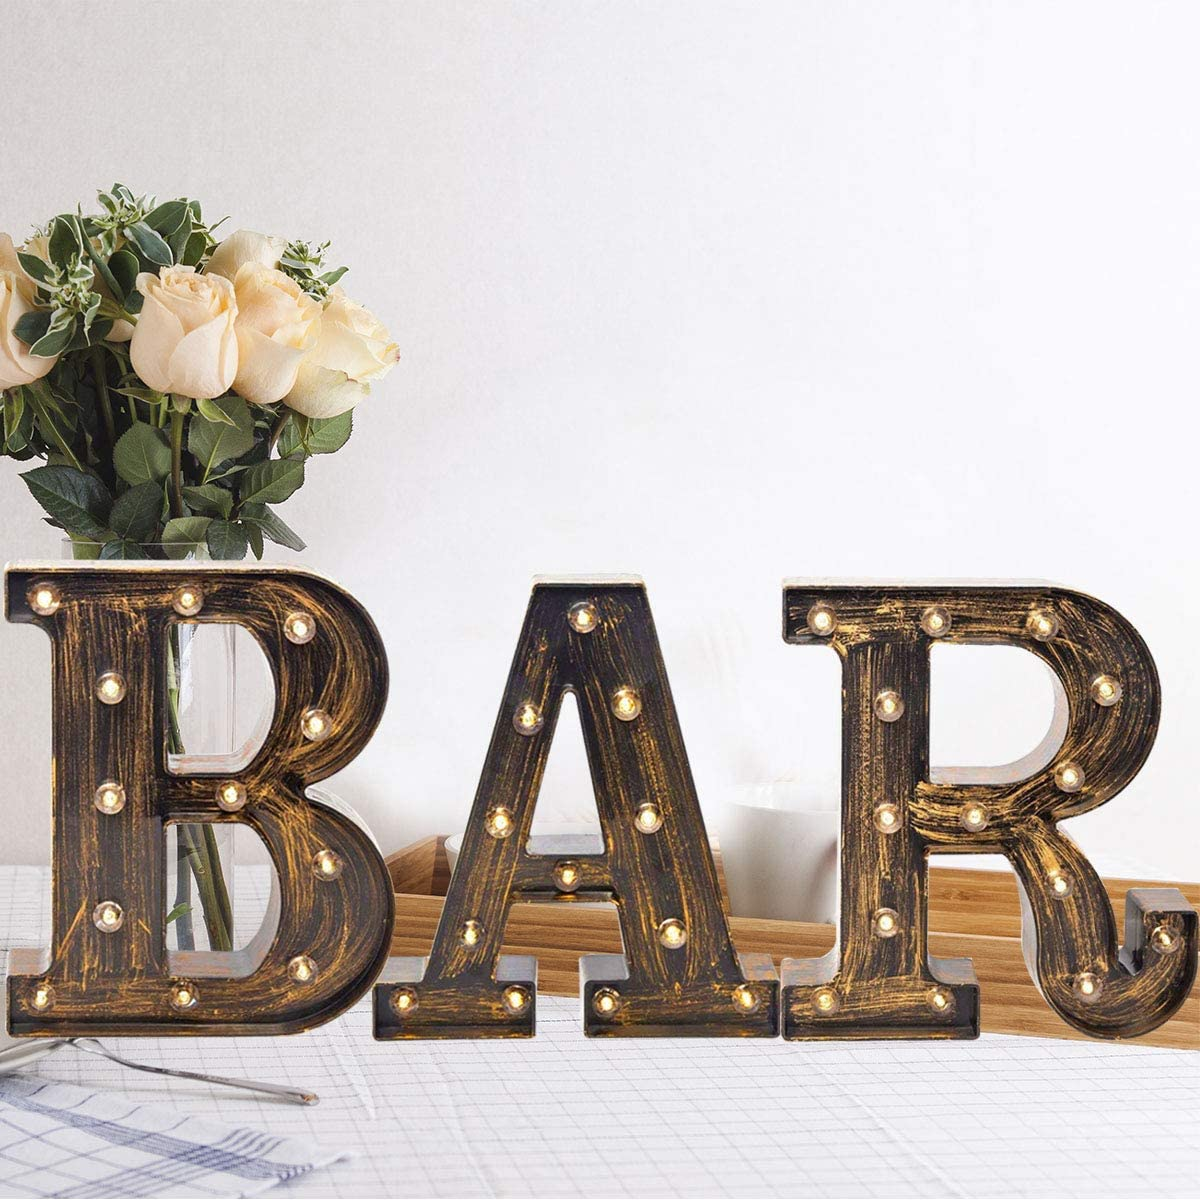 Oycbuzo Golden Black Led Marquee Letter Vintage Style Light Up Alphabet Letter Sign for Cafe Wedding Birthday Party Christmas Lamp Home Bar Initials Decor Industrial